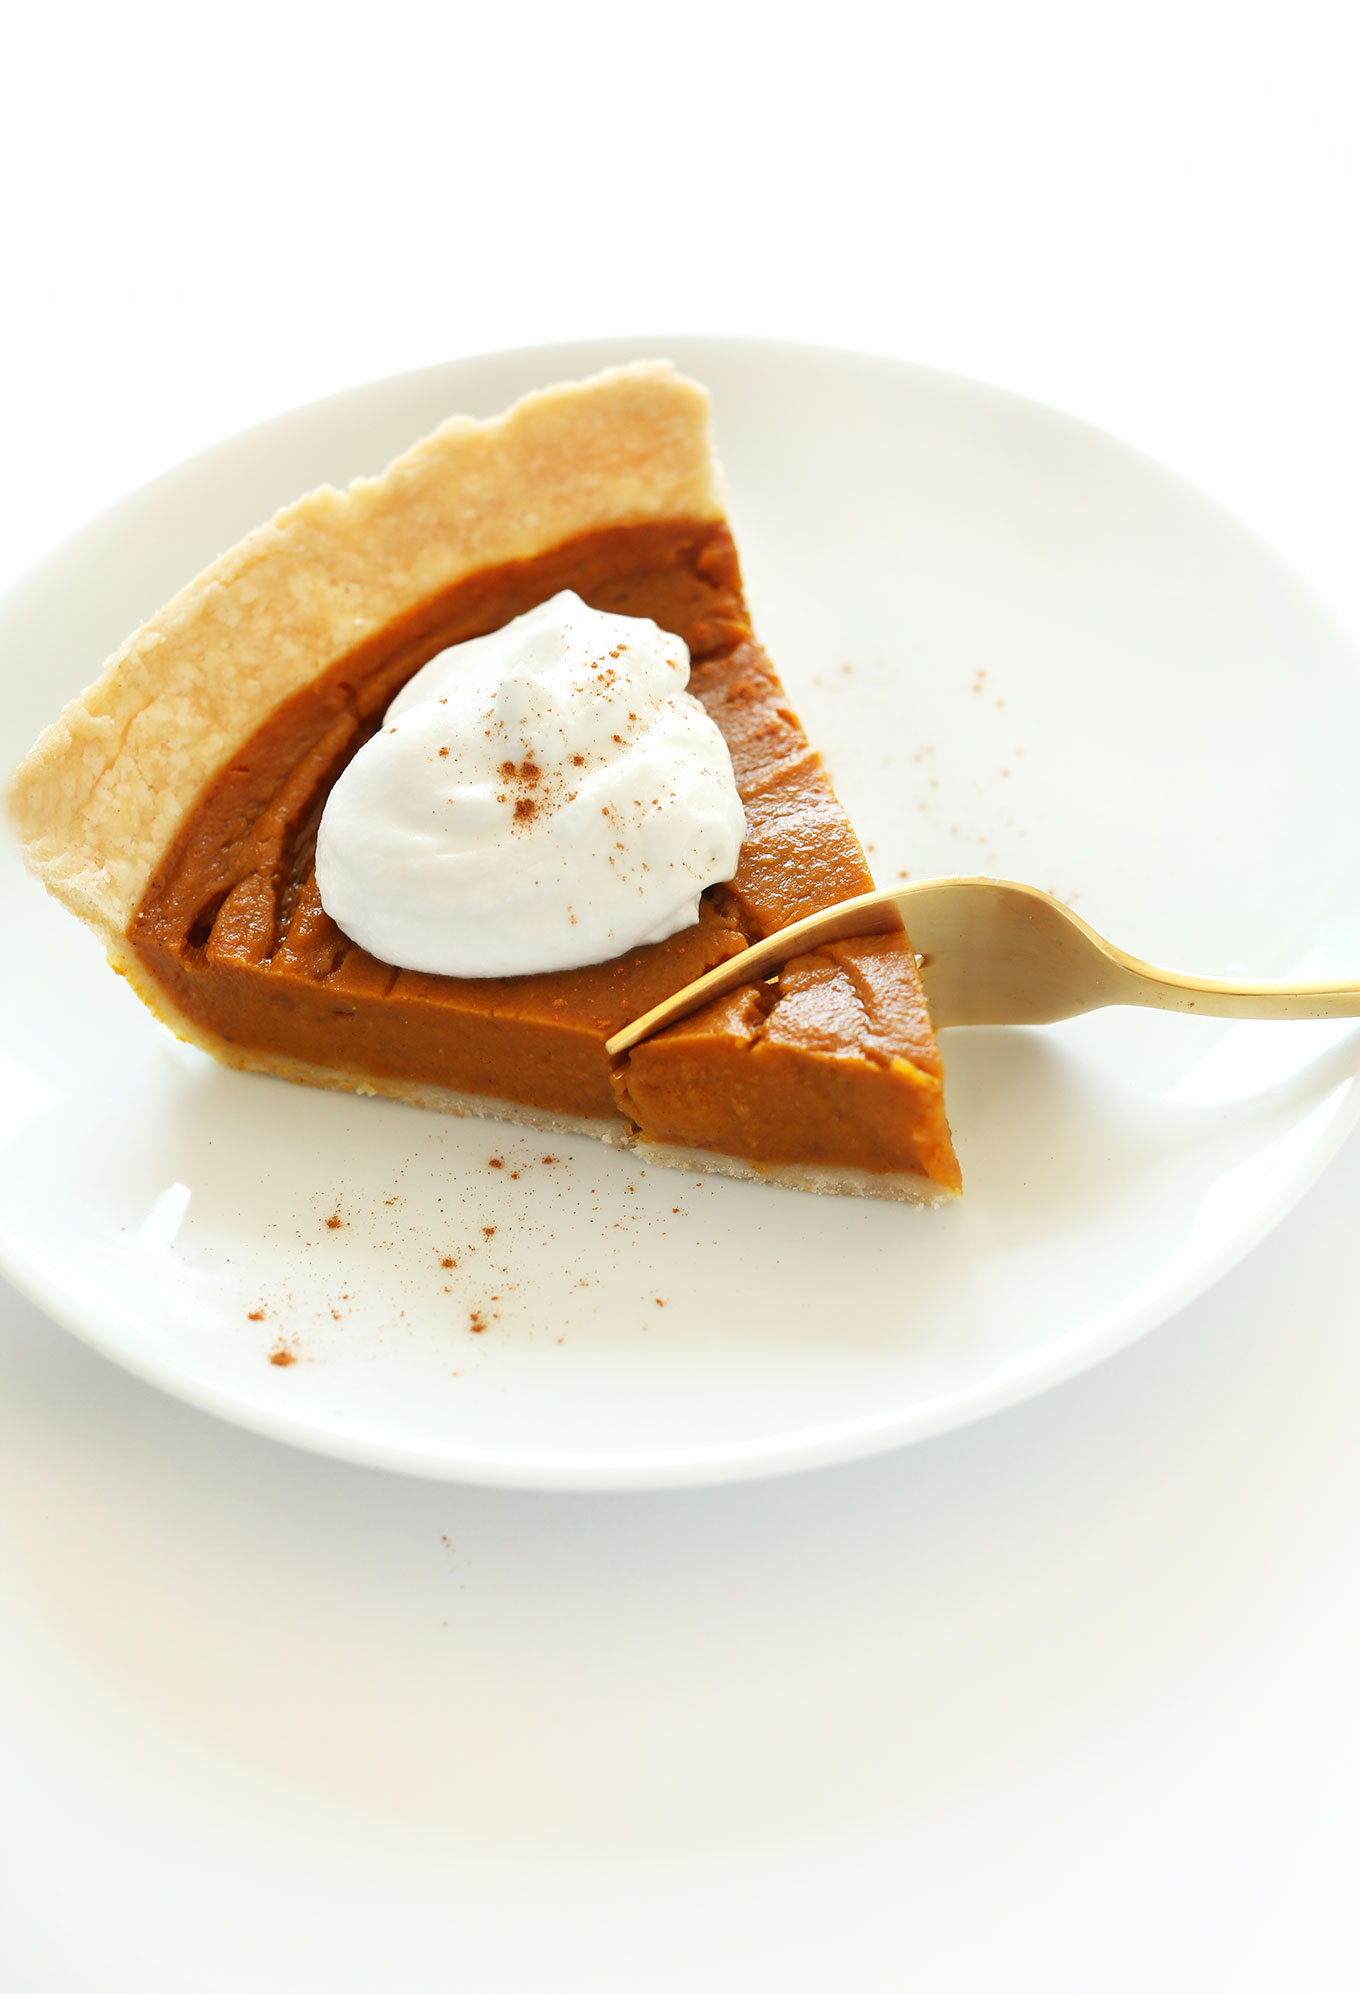 6ba7355c7226 Grabbing a bite from the tip of a slice of vegan gluten-free pumpkin pie